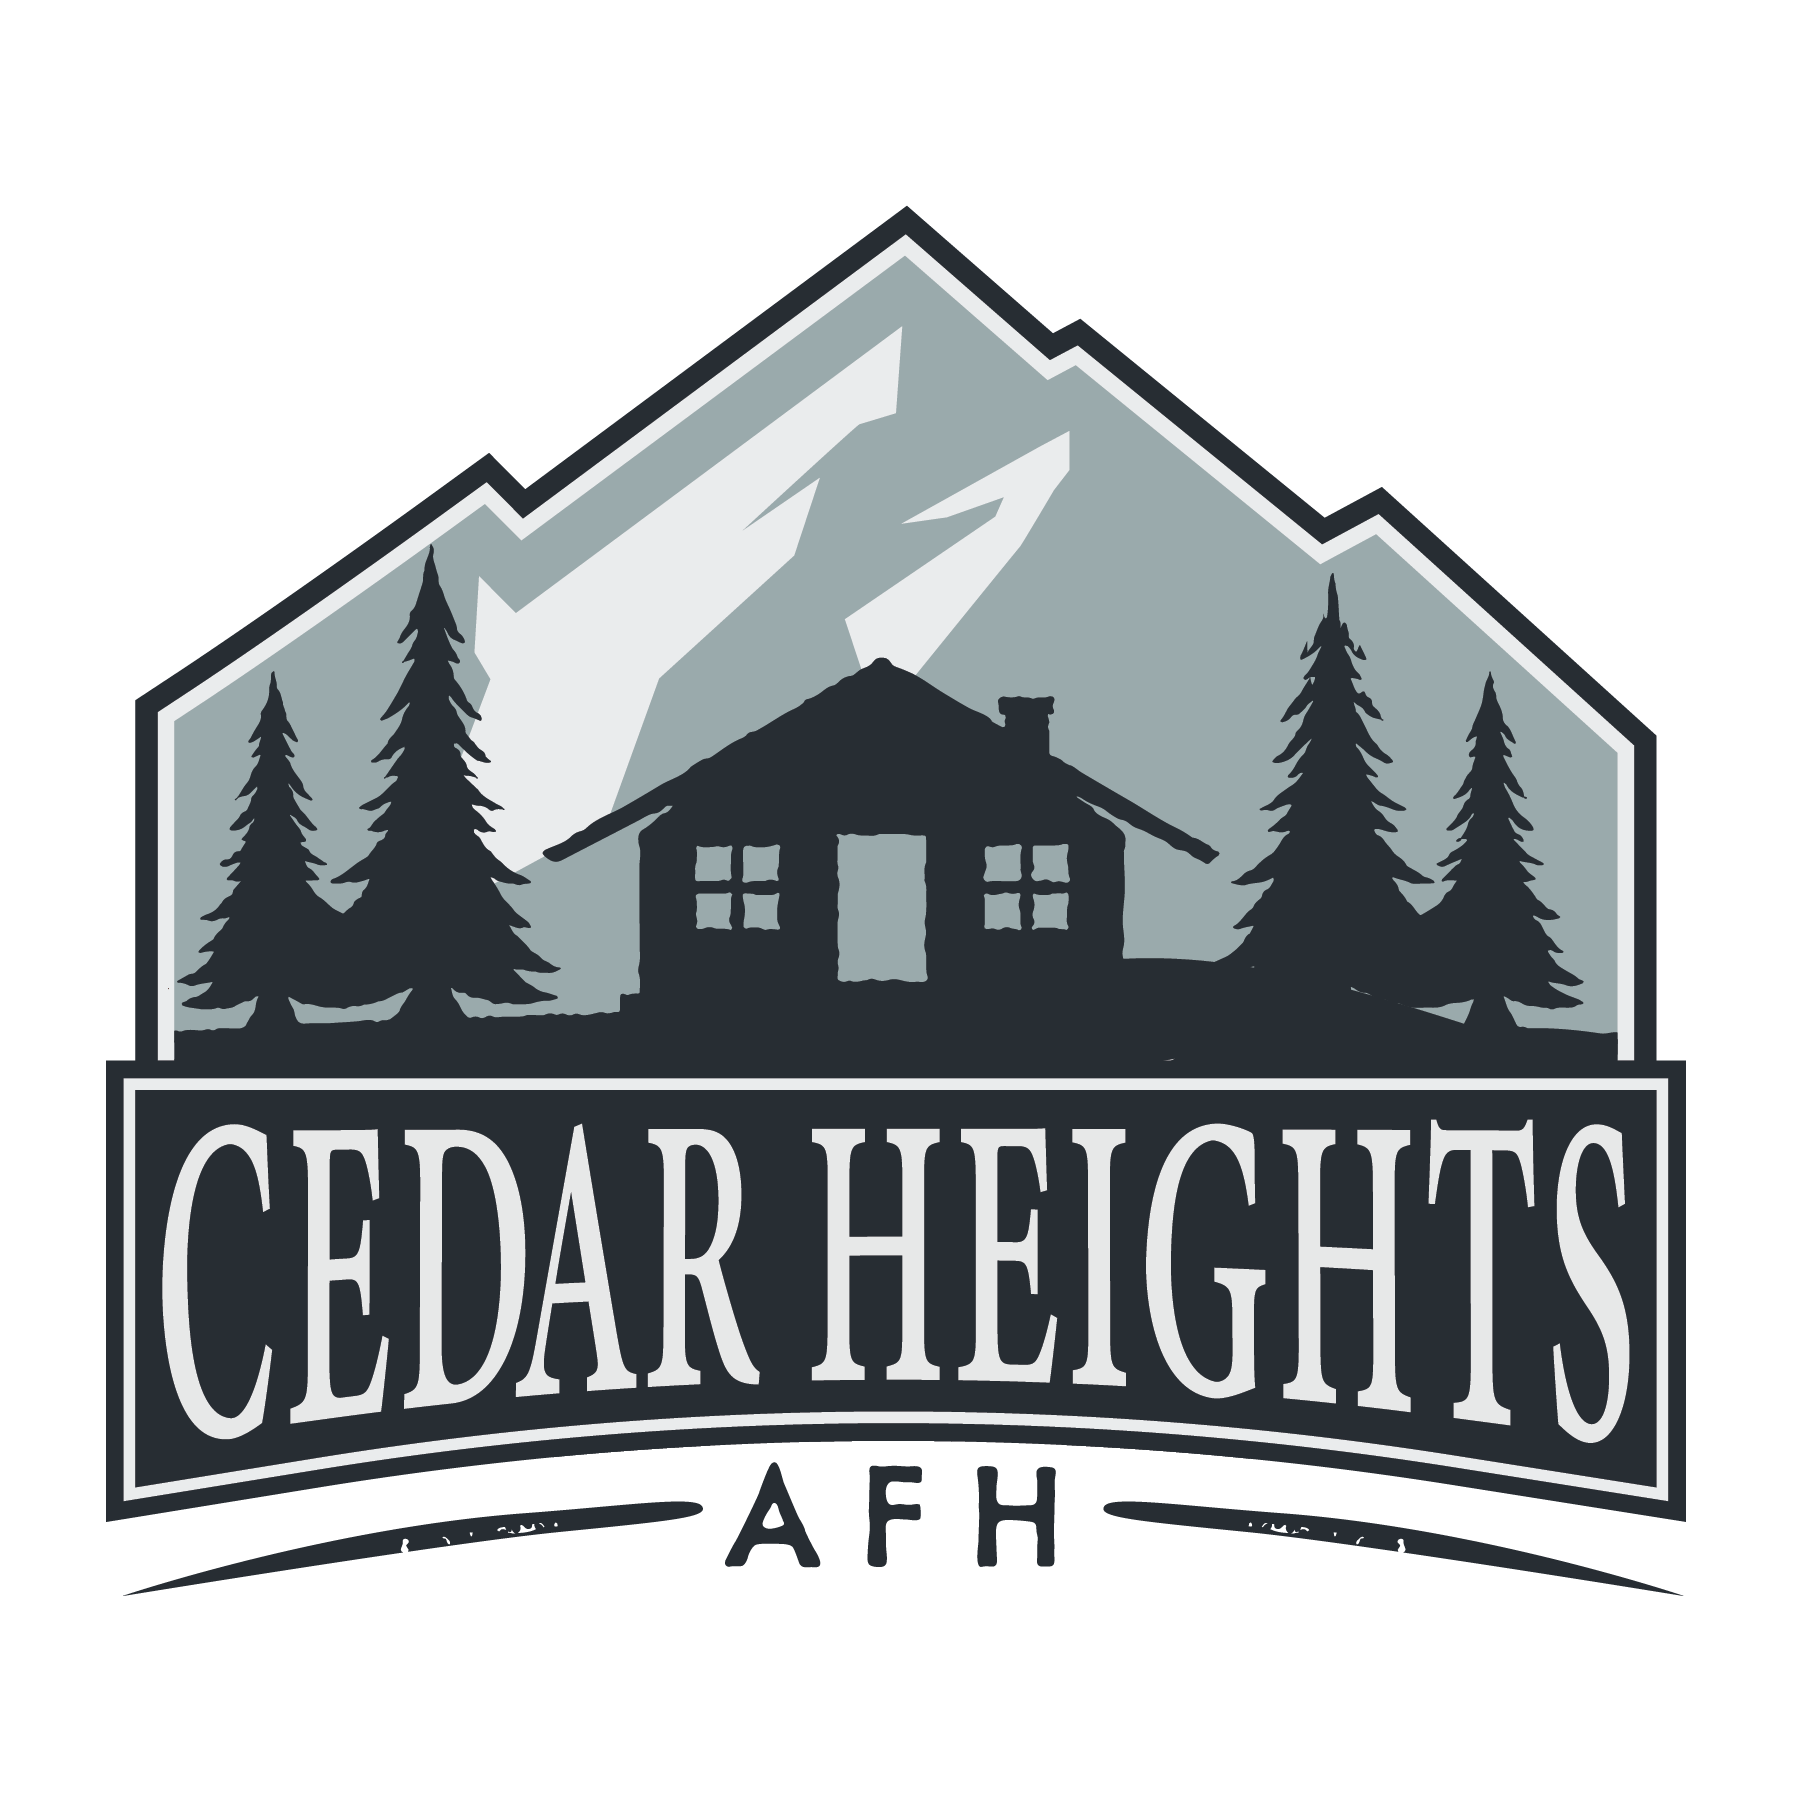 Cedar Heights AFH